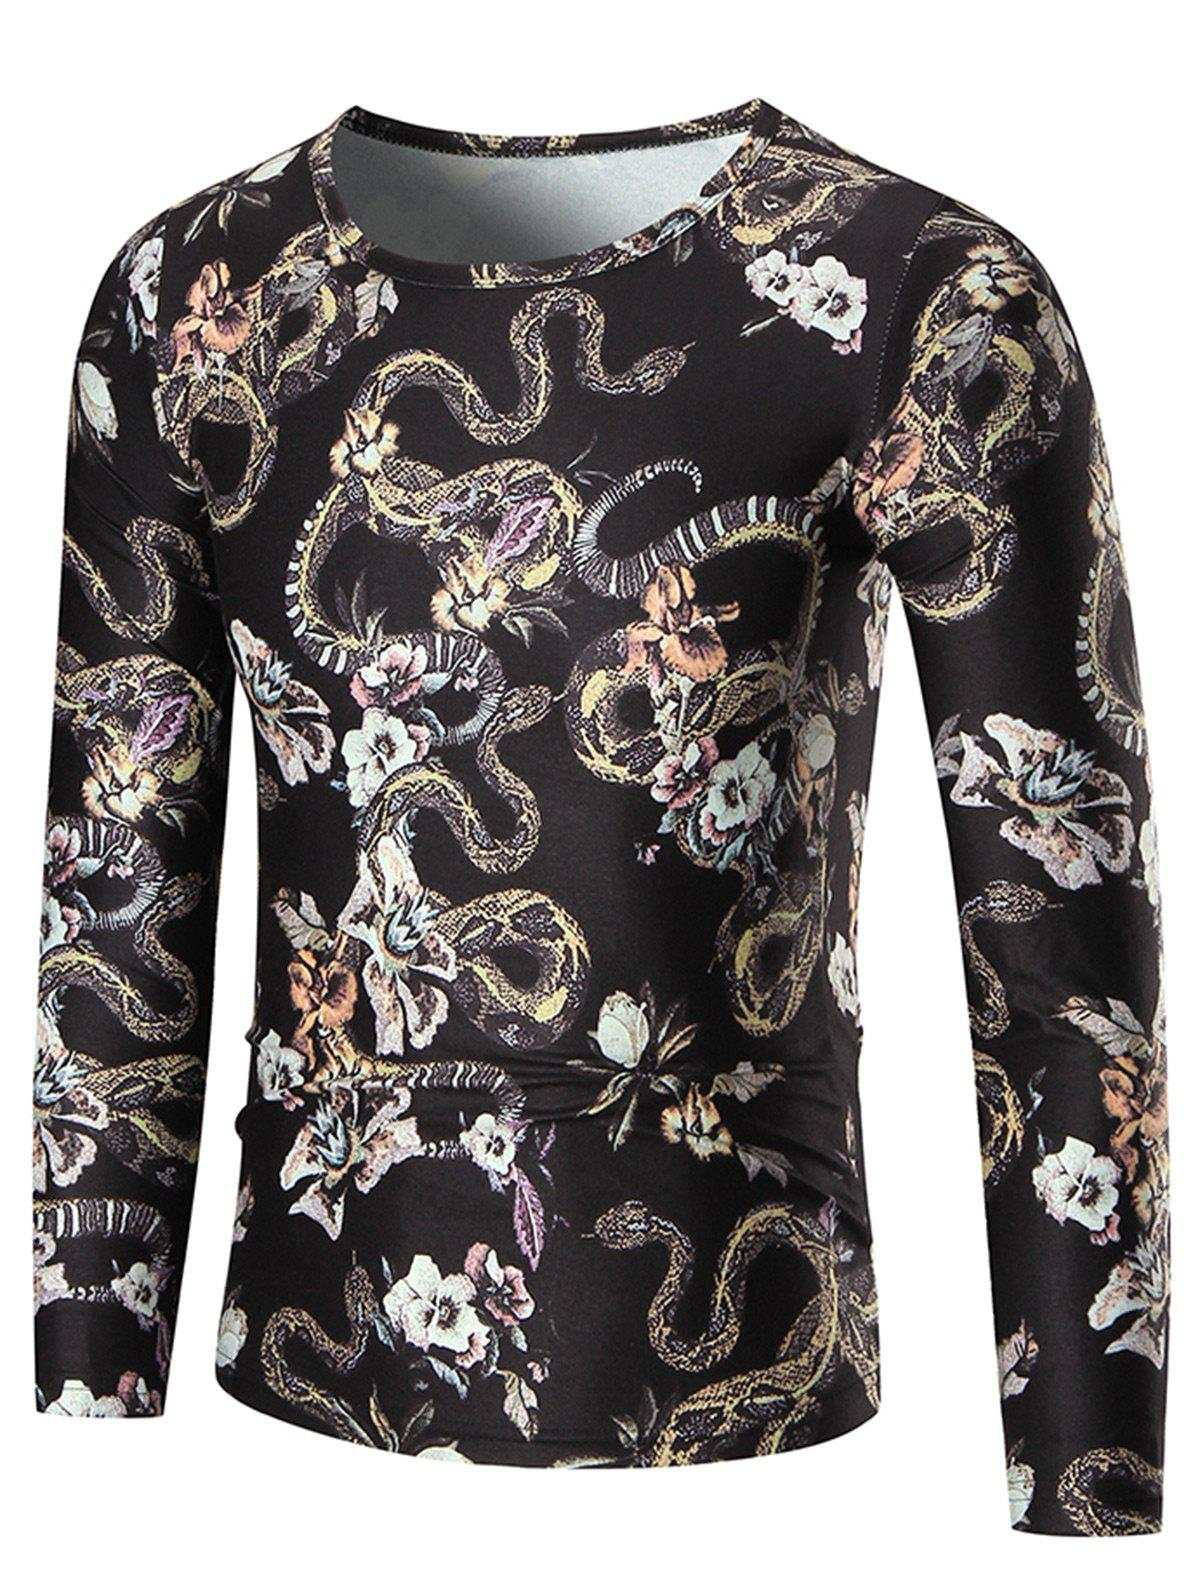 Boa Constrictor Long Sleeve T-shirt - COLORMIX 3XL